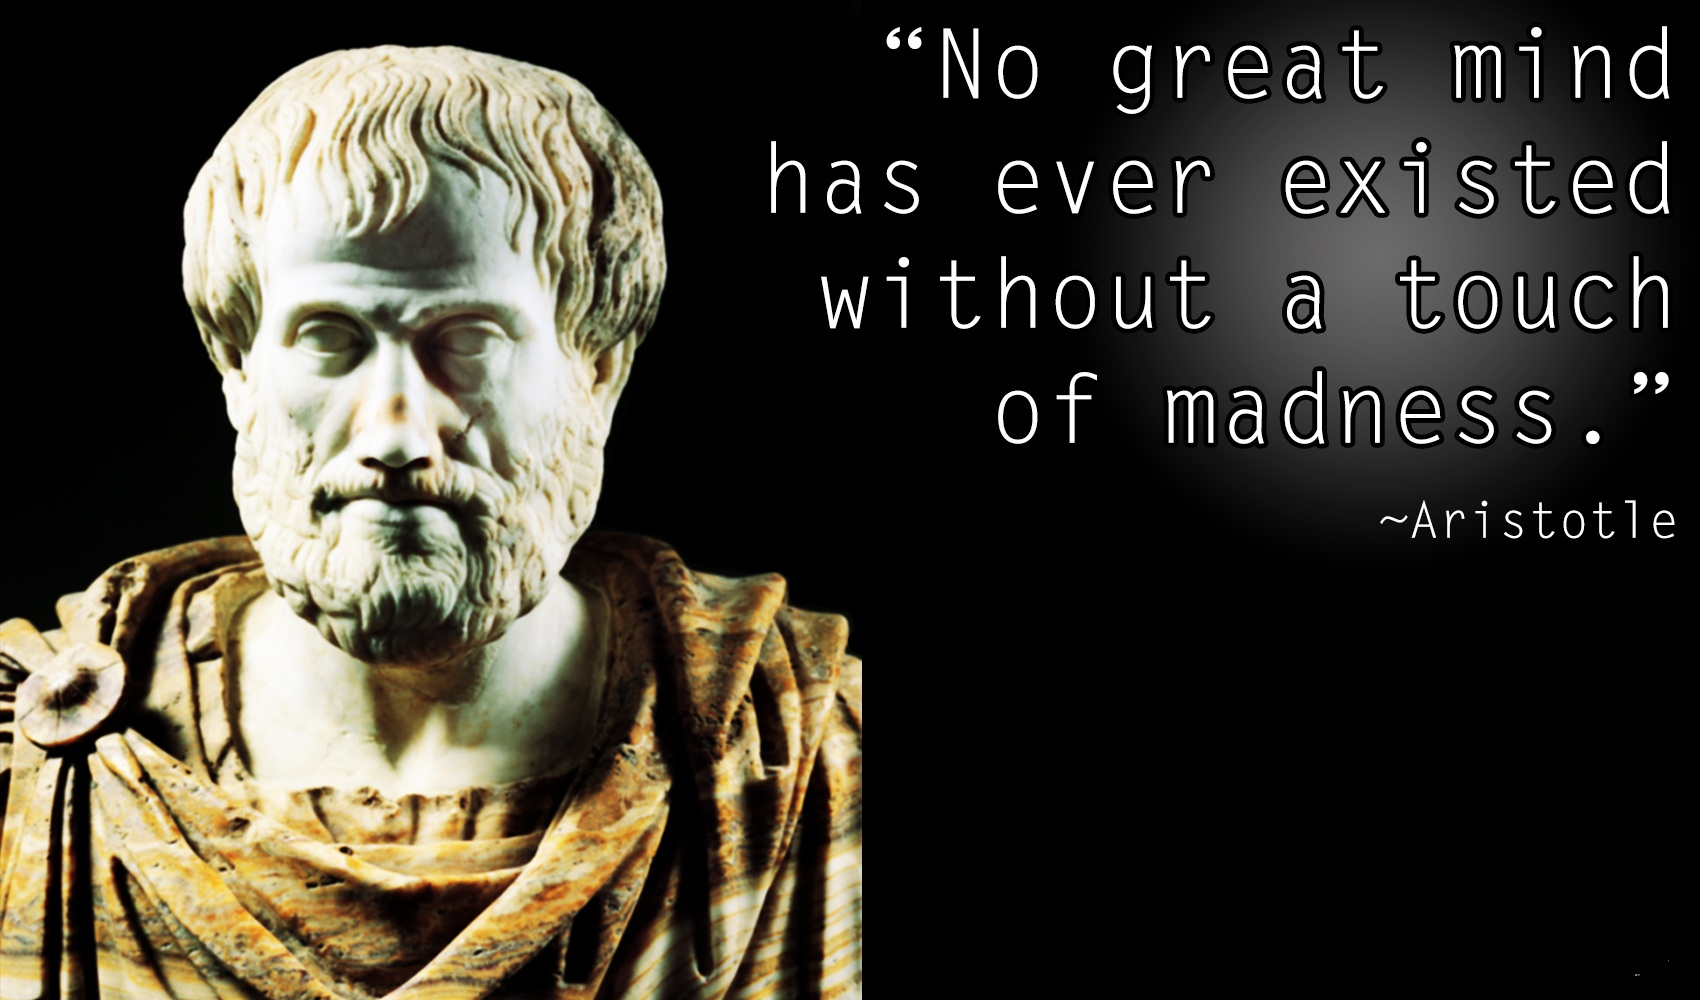 Aristotle-Quote.jpg